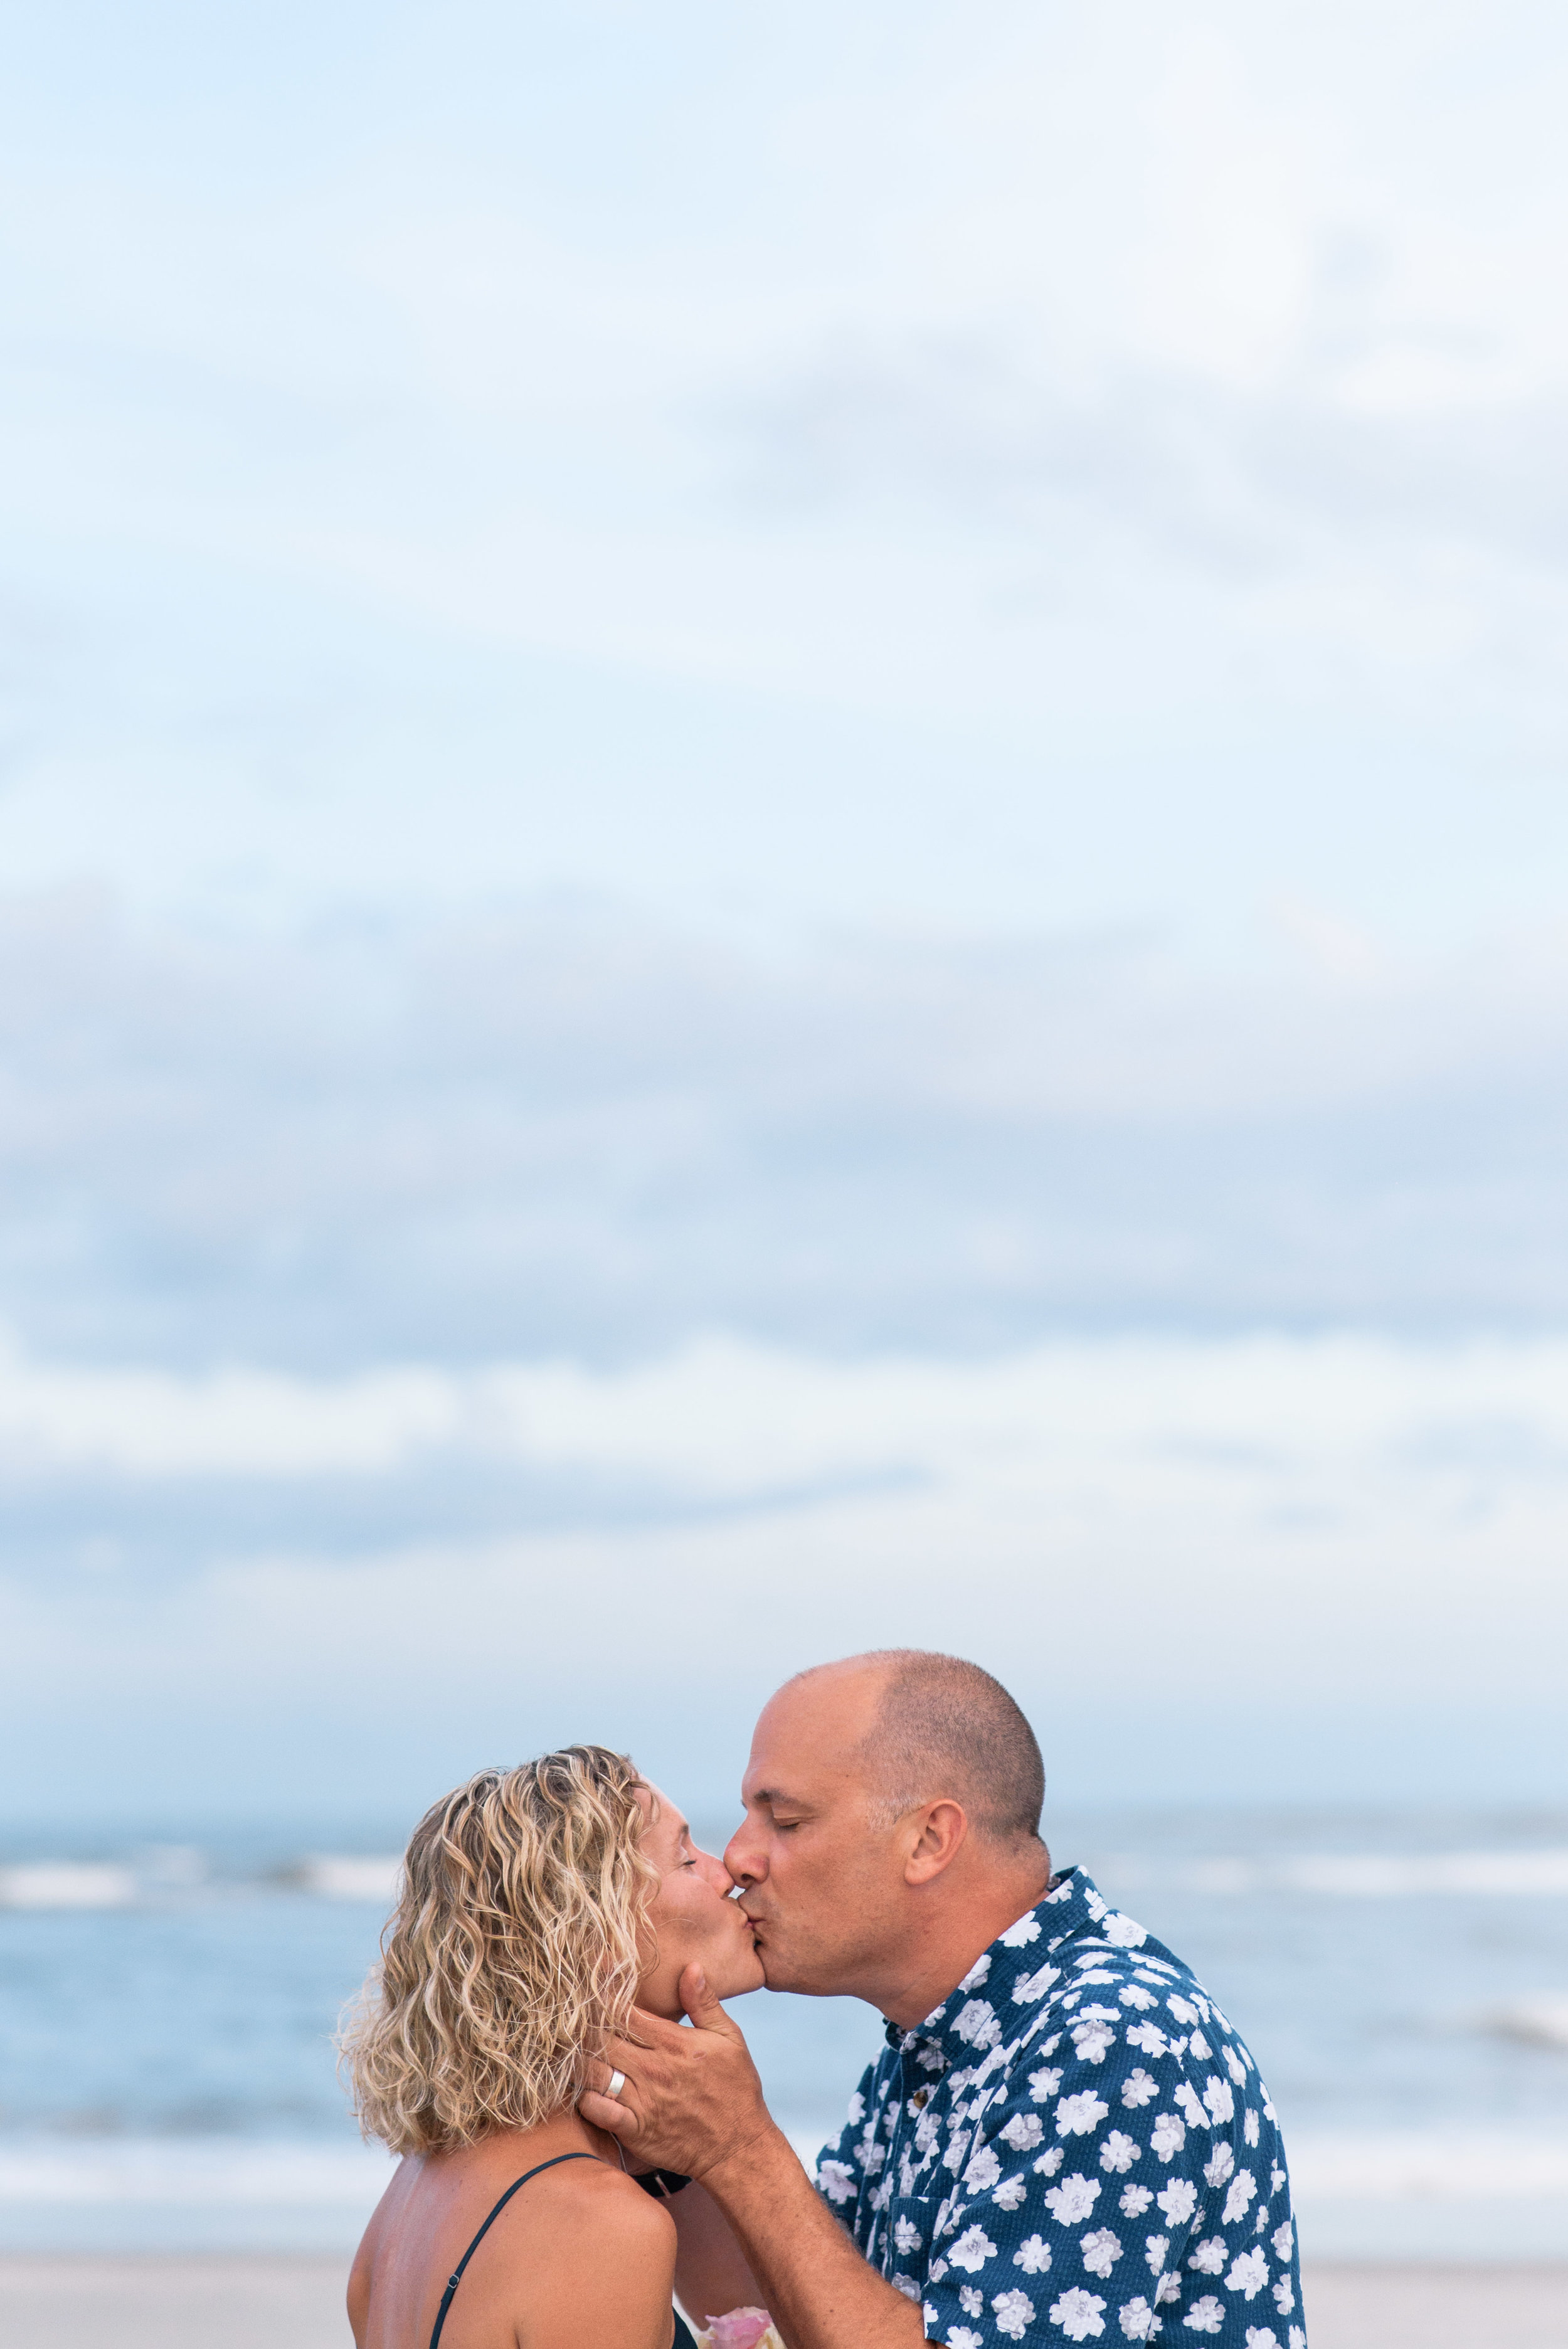 Bill-and-ashley-elope-to-savannah-tybee-island-elopement (45 of 182).jpg